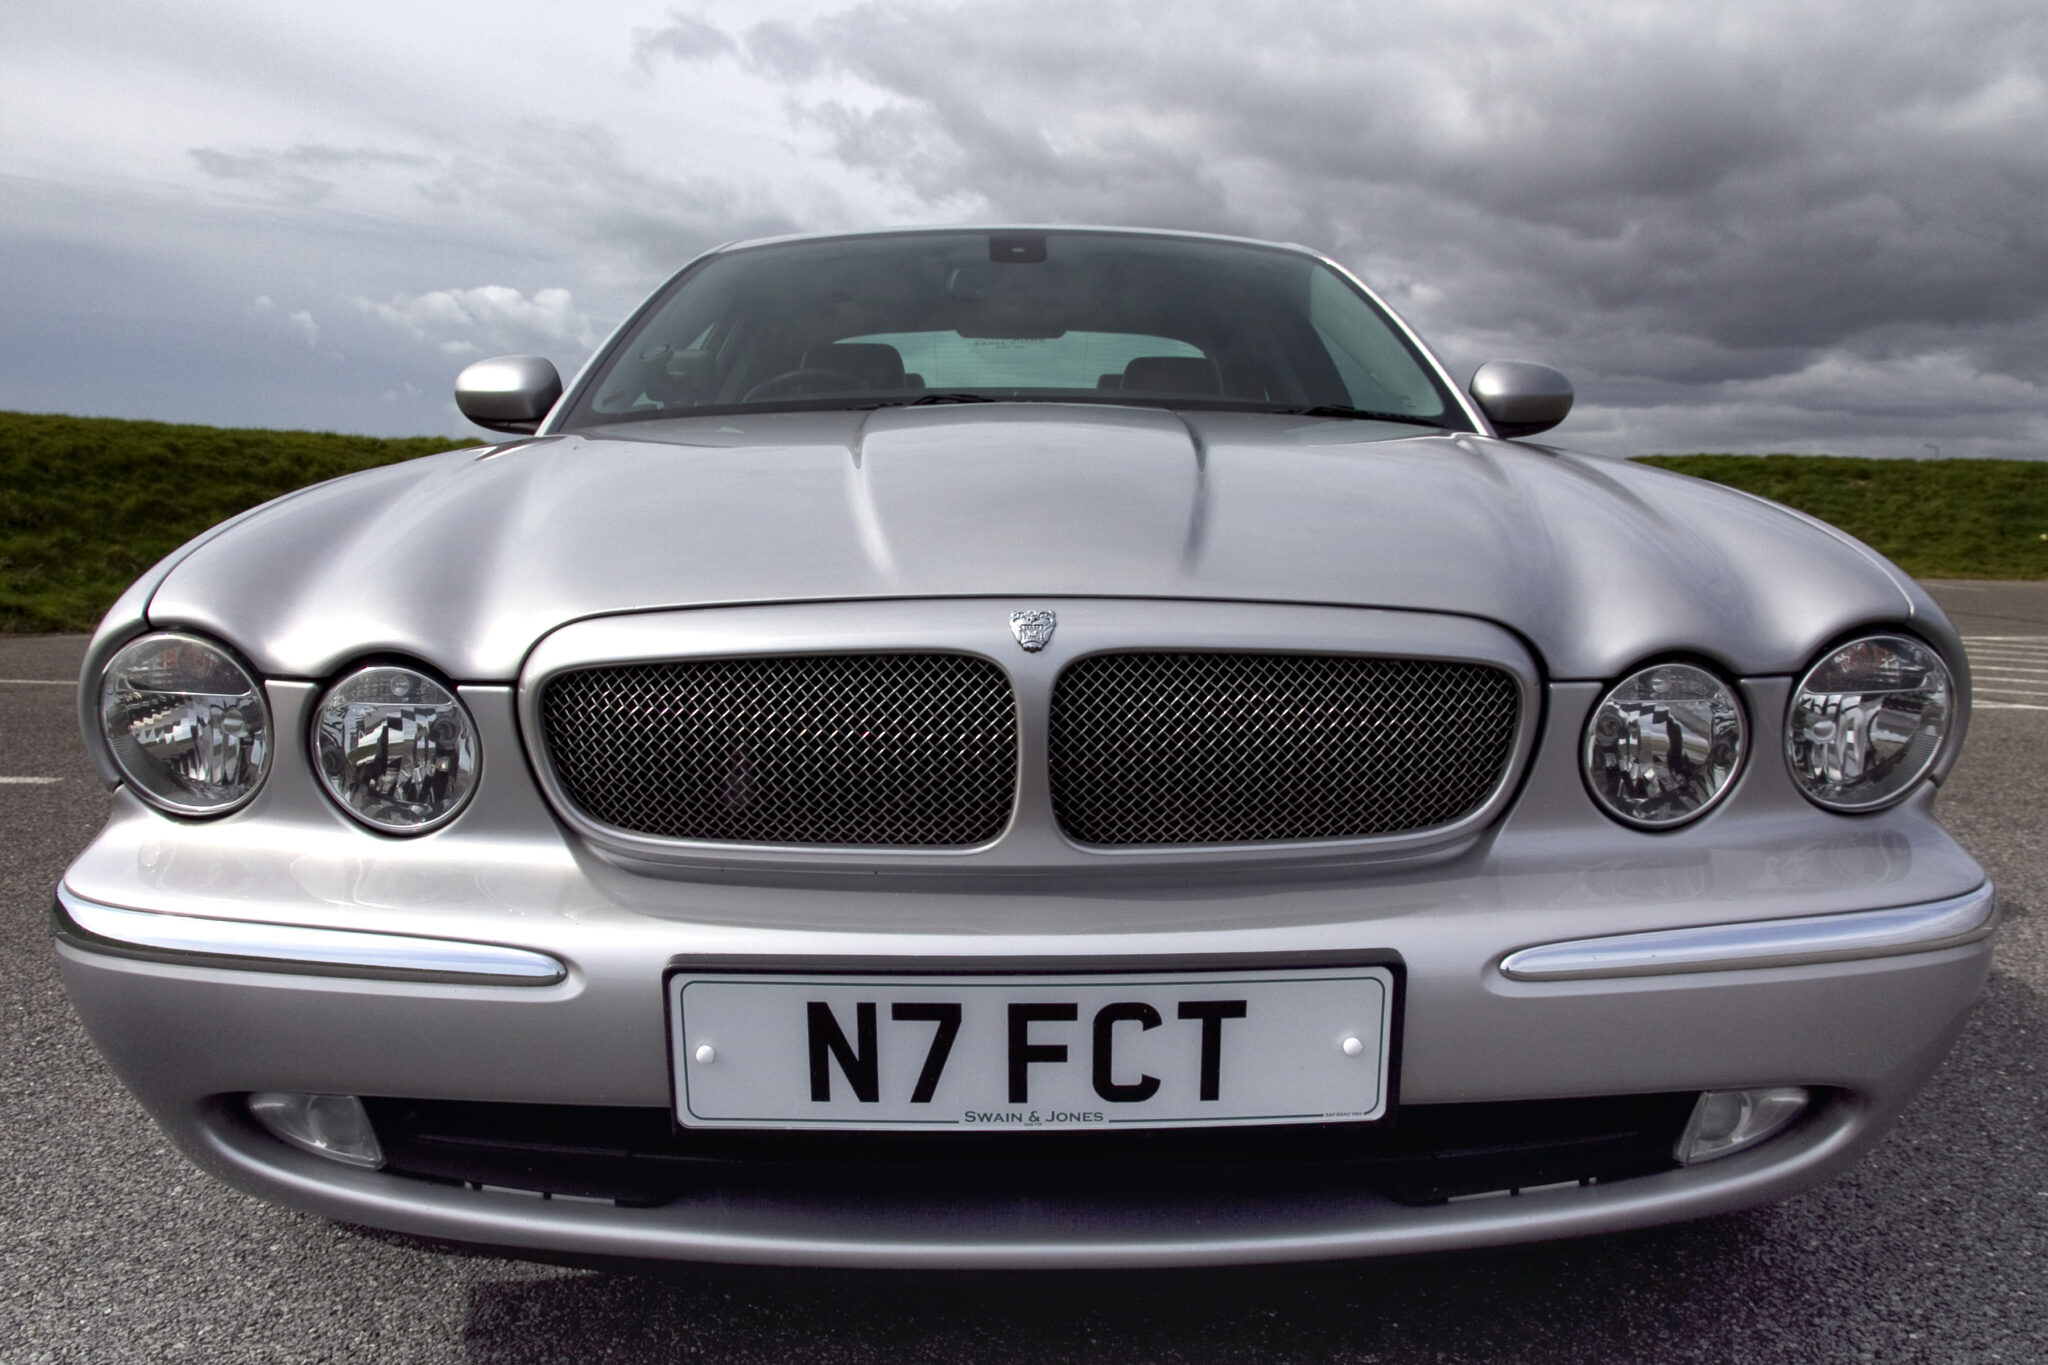 Jaguar Car with private plate